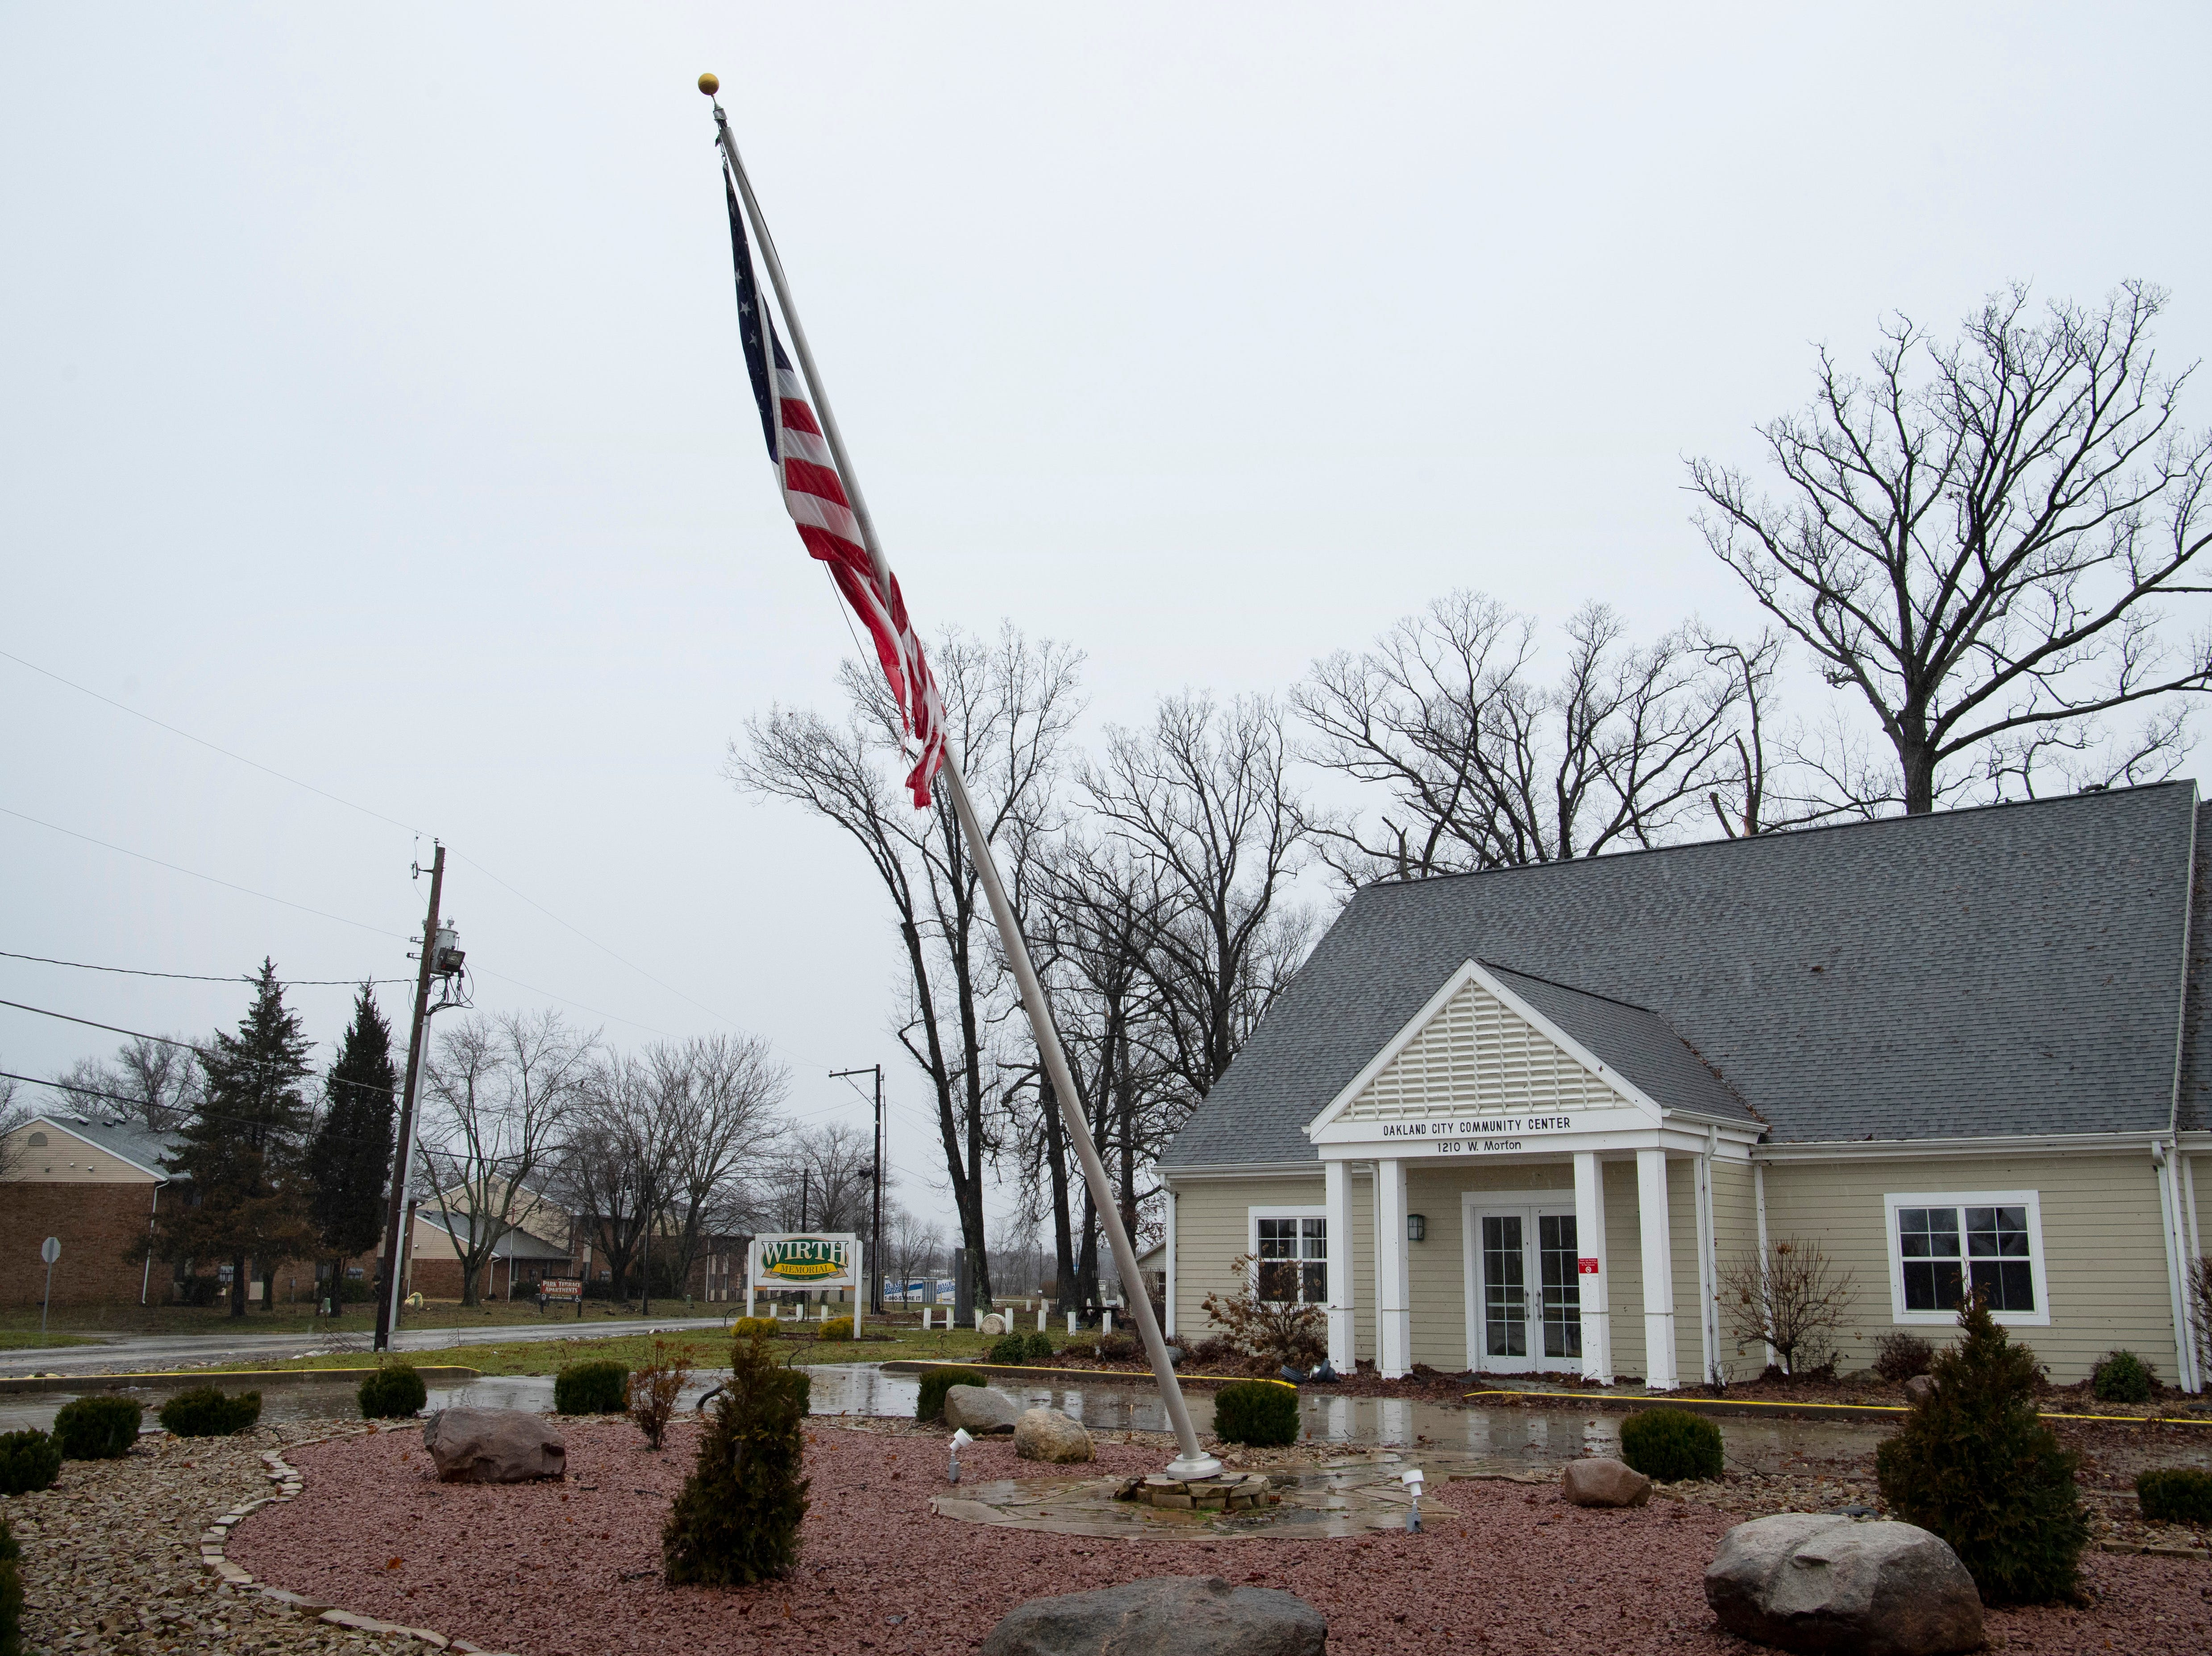 The Oakland City Community Center's flag pole was left askew after a storm hit the Gibson County town Thursday morning.